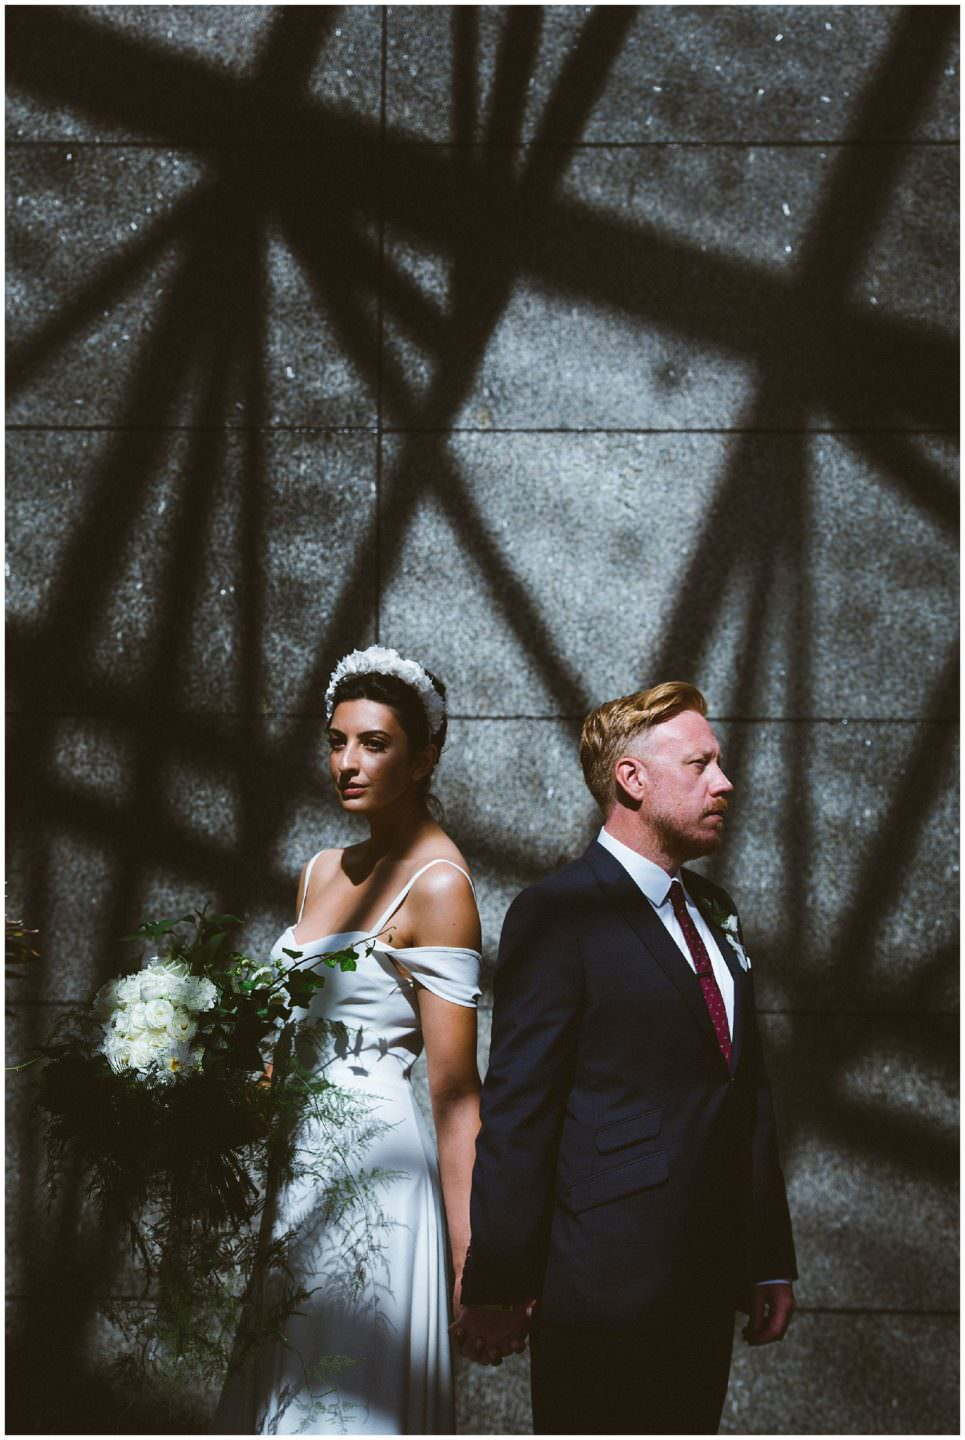 Vancouver wedding photographer Ronnie Lee Hill Photography